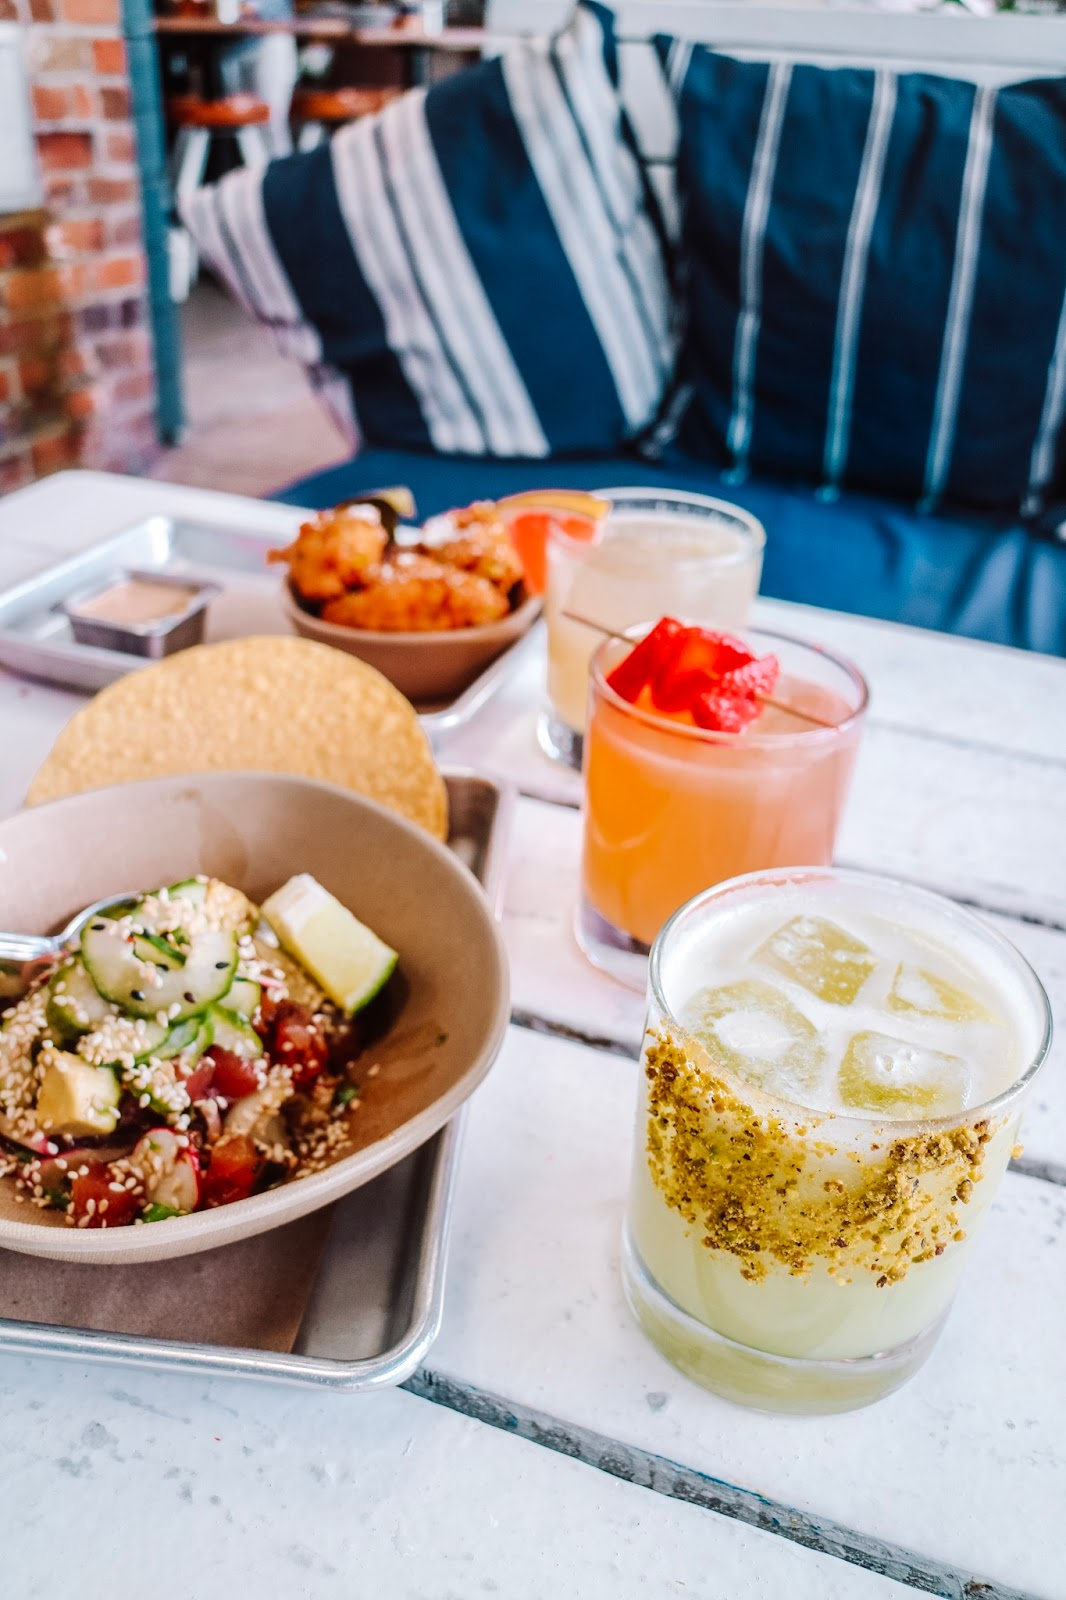 Margarita March offerings at bartaco in Hyde Park Village located in Tampa, Florida